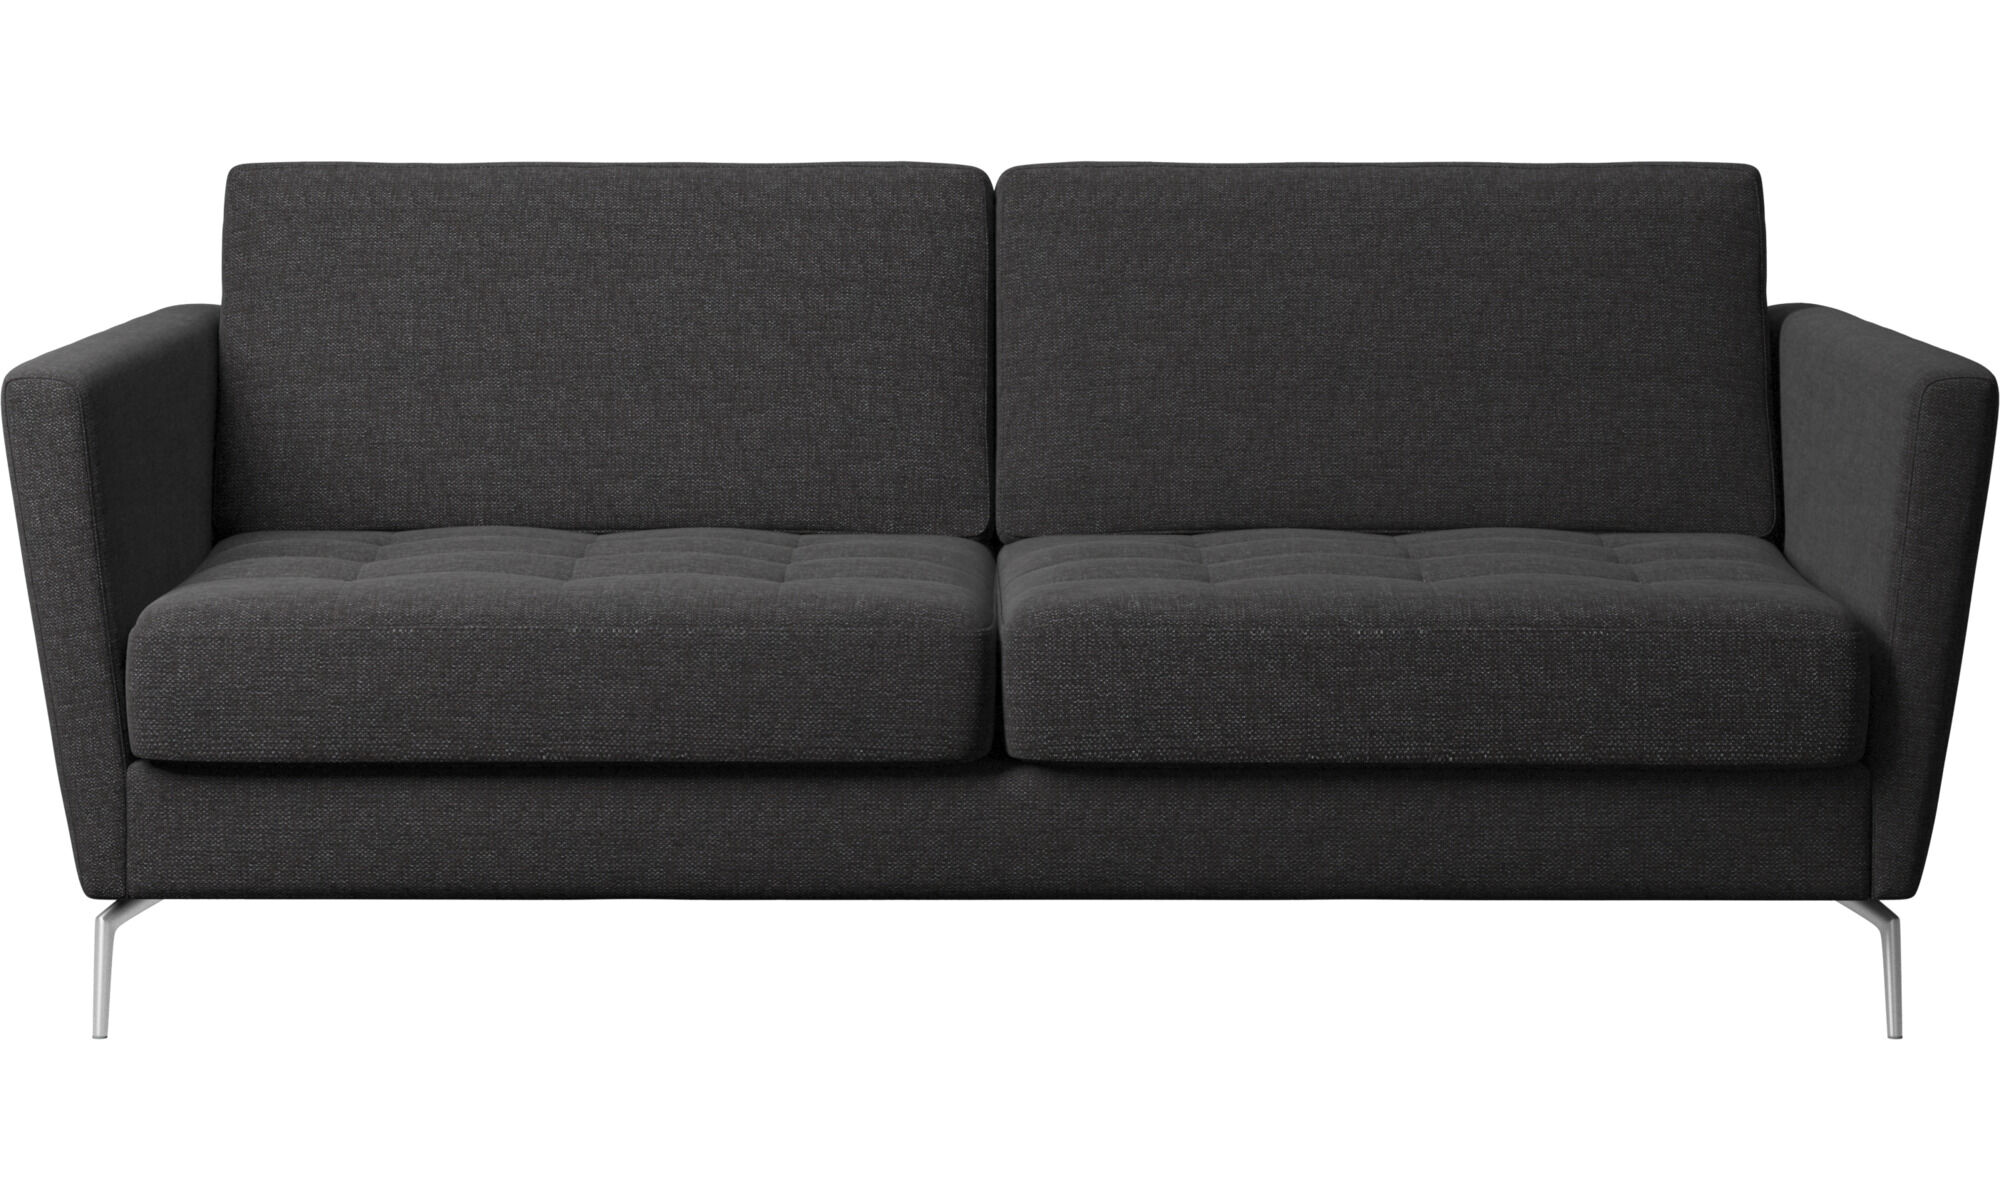 boconcept sleeper sofa review 78 inch beds quality from osaka bed black fabric